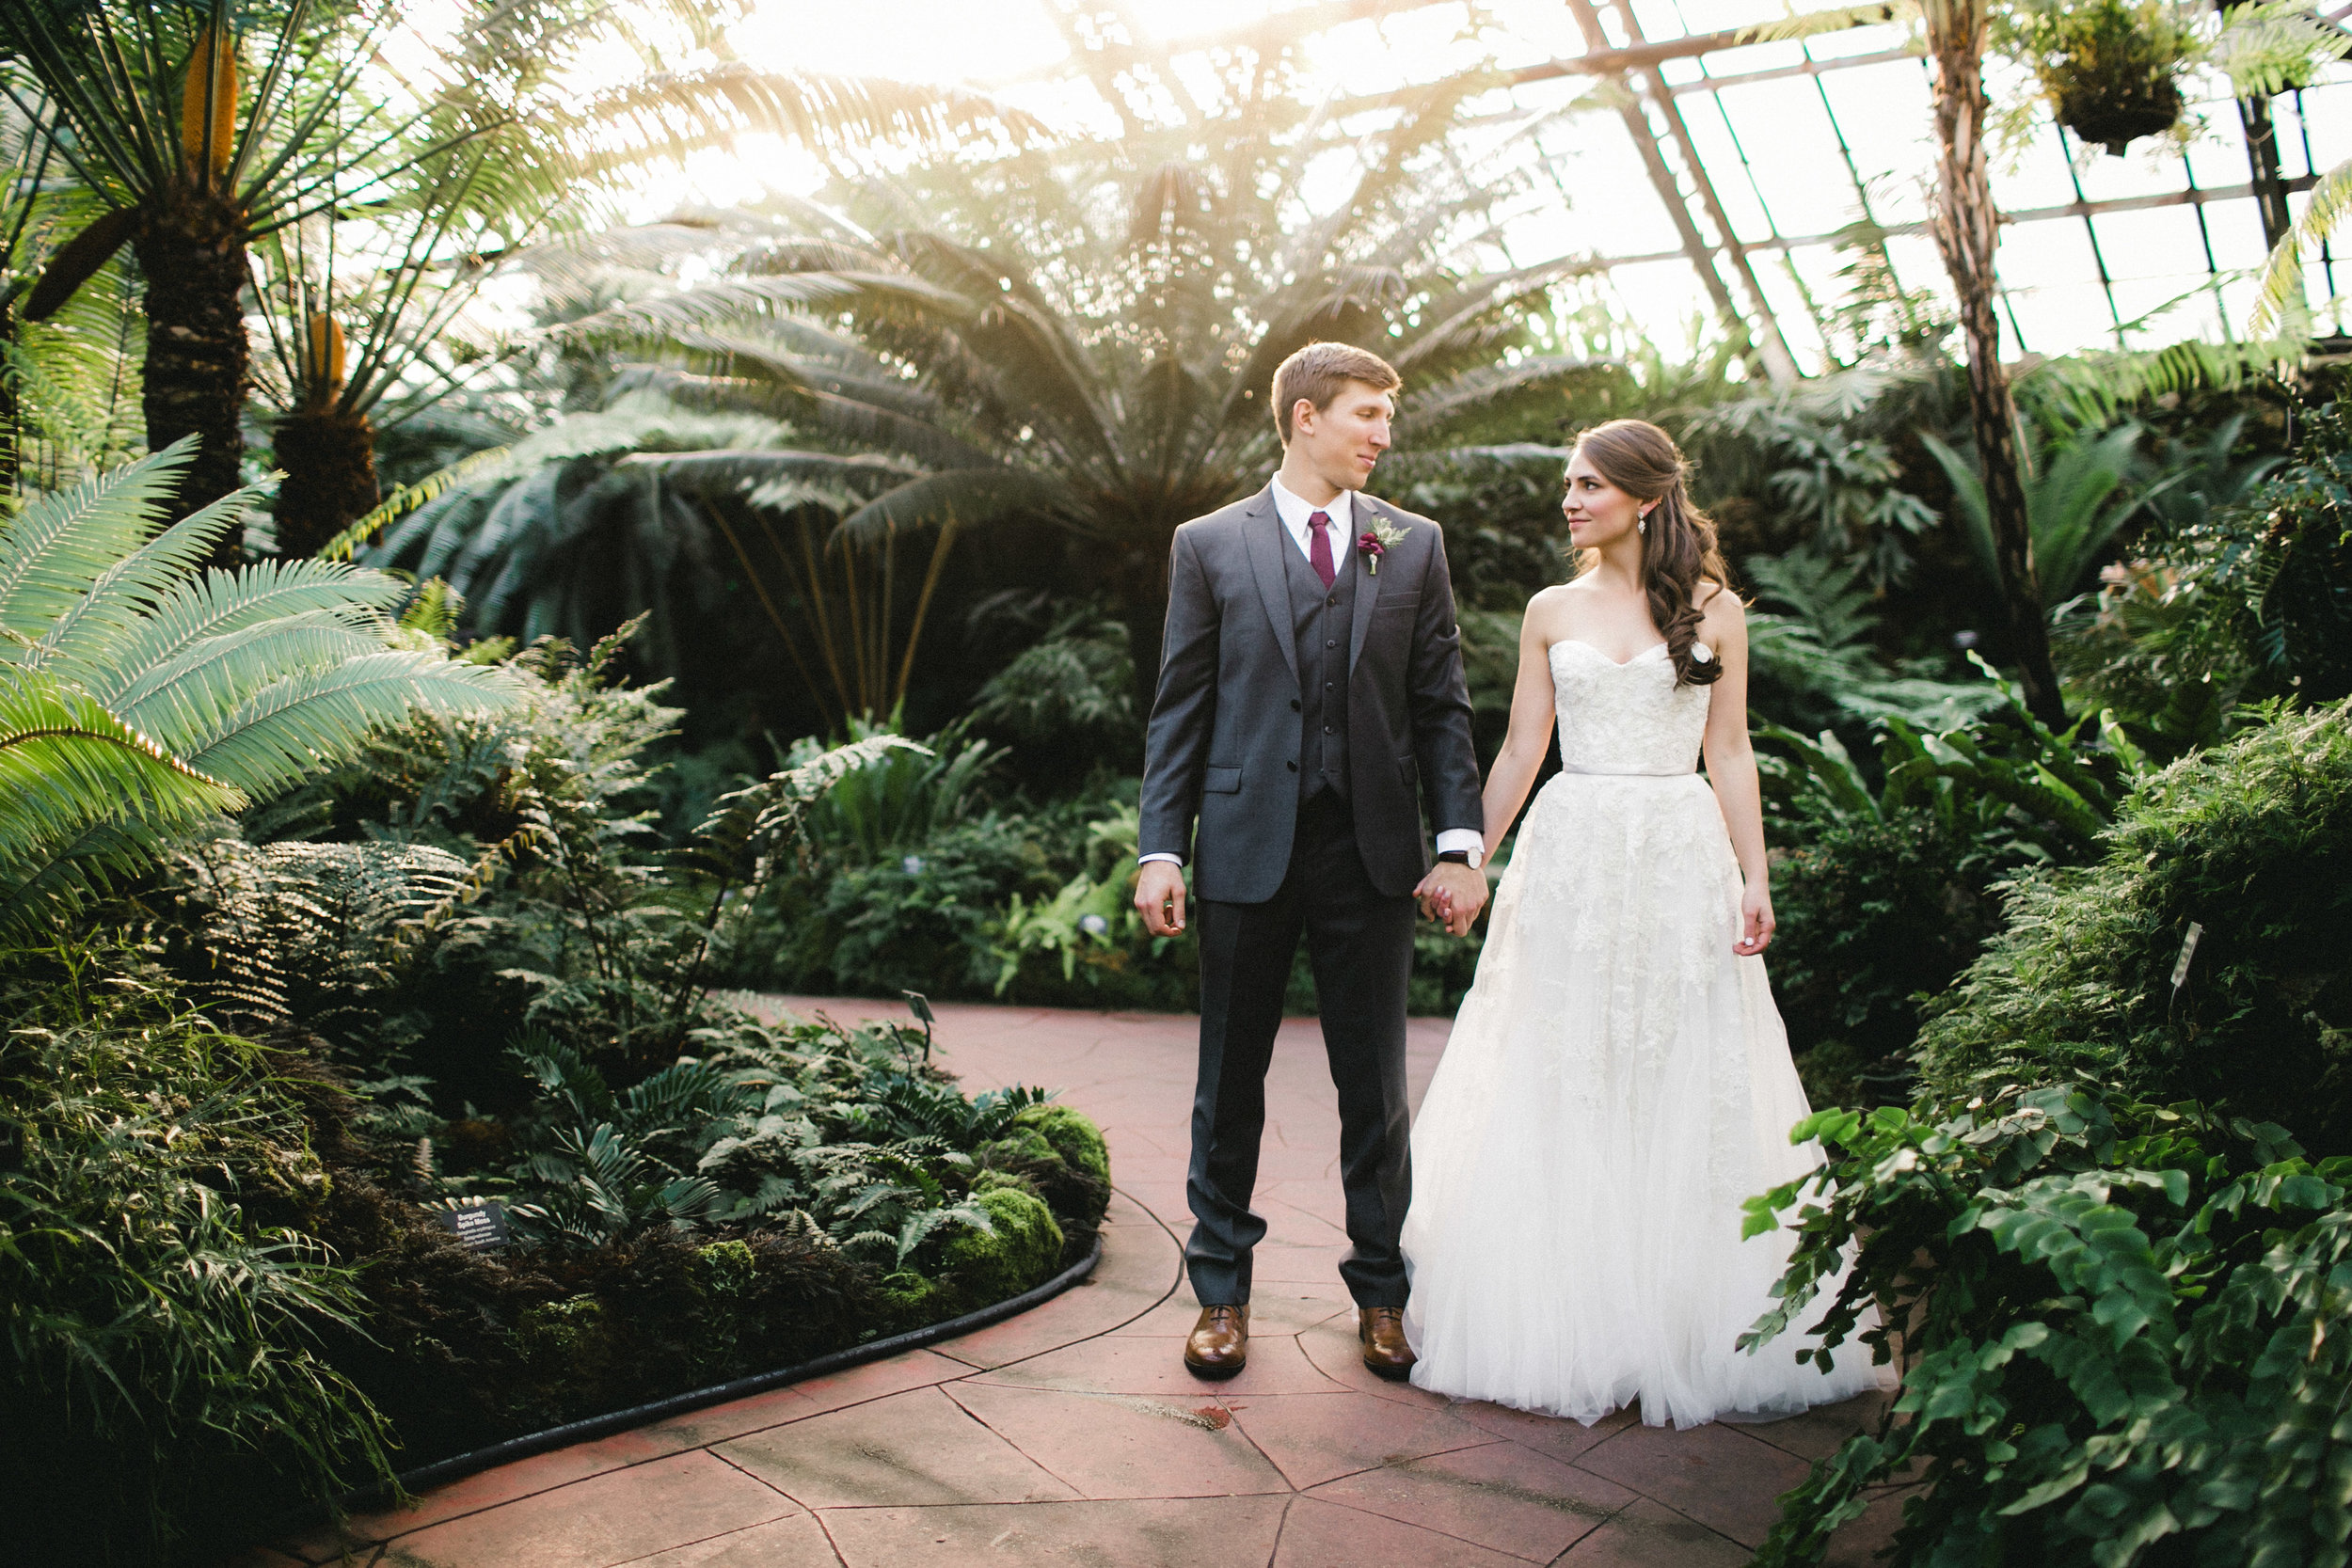 Bridal Portraits in a Conservatory